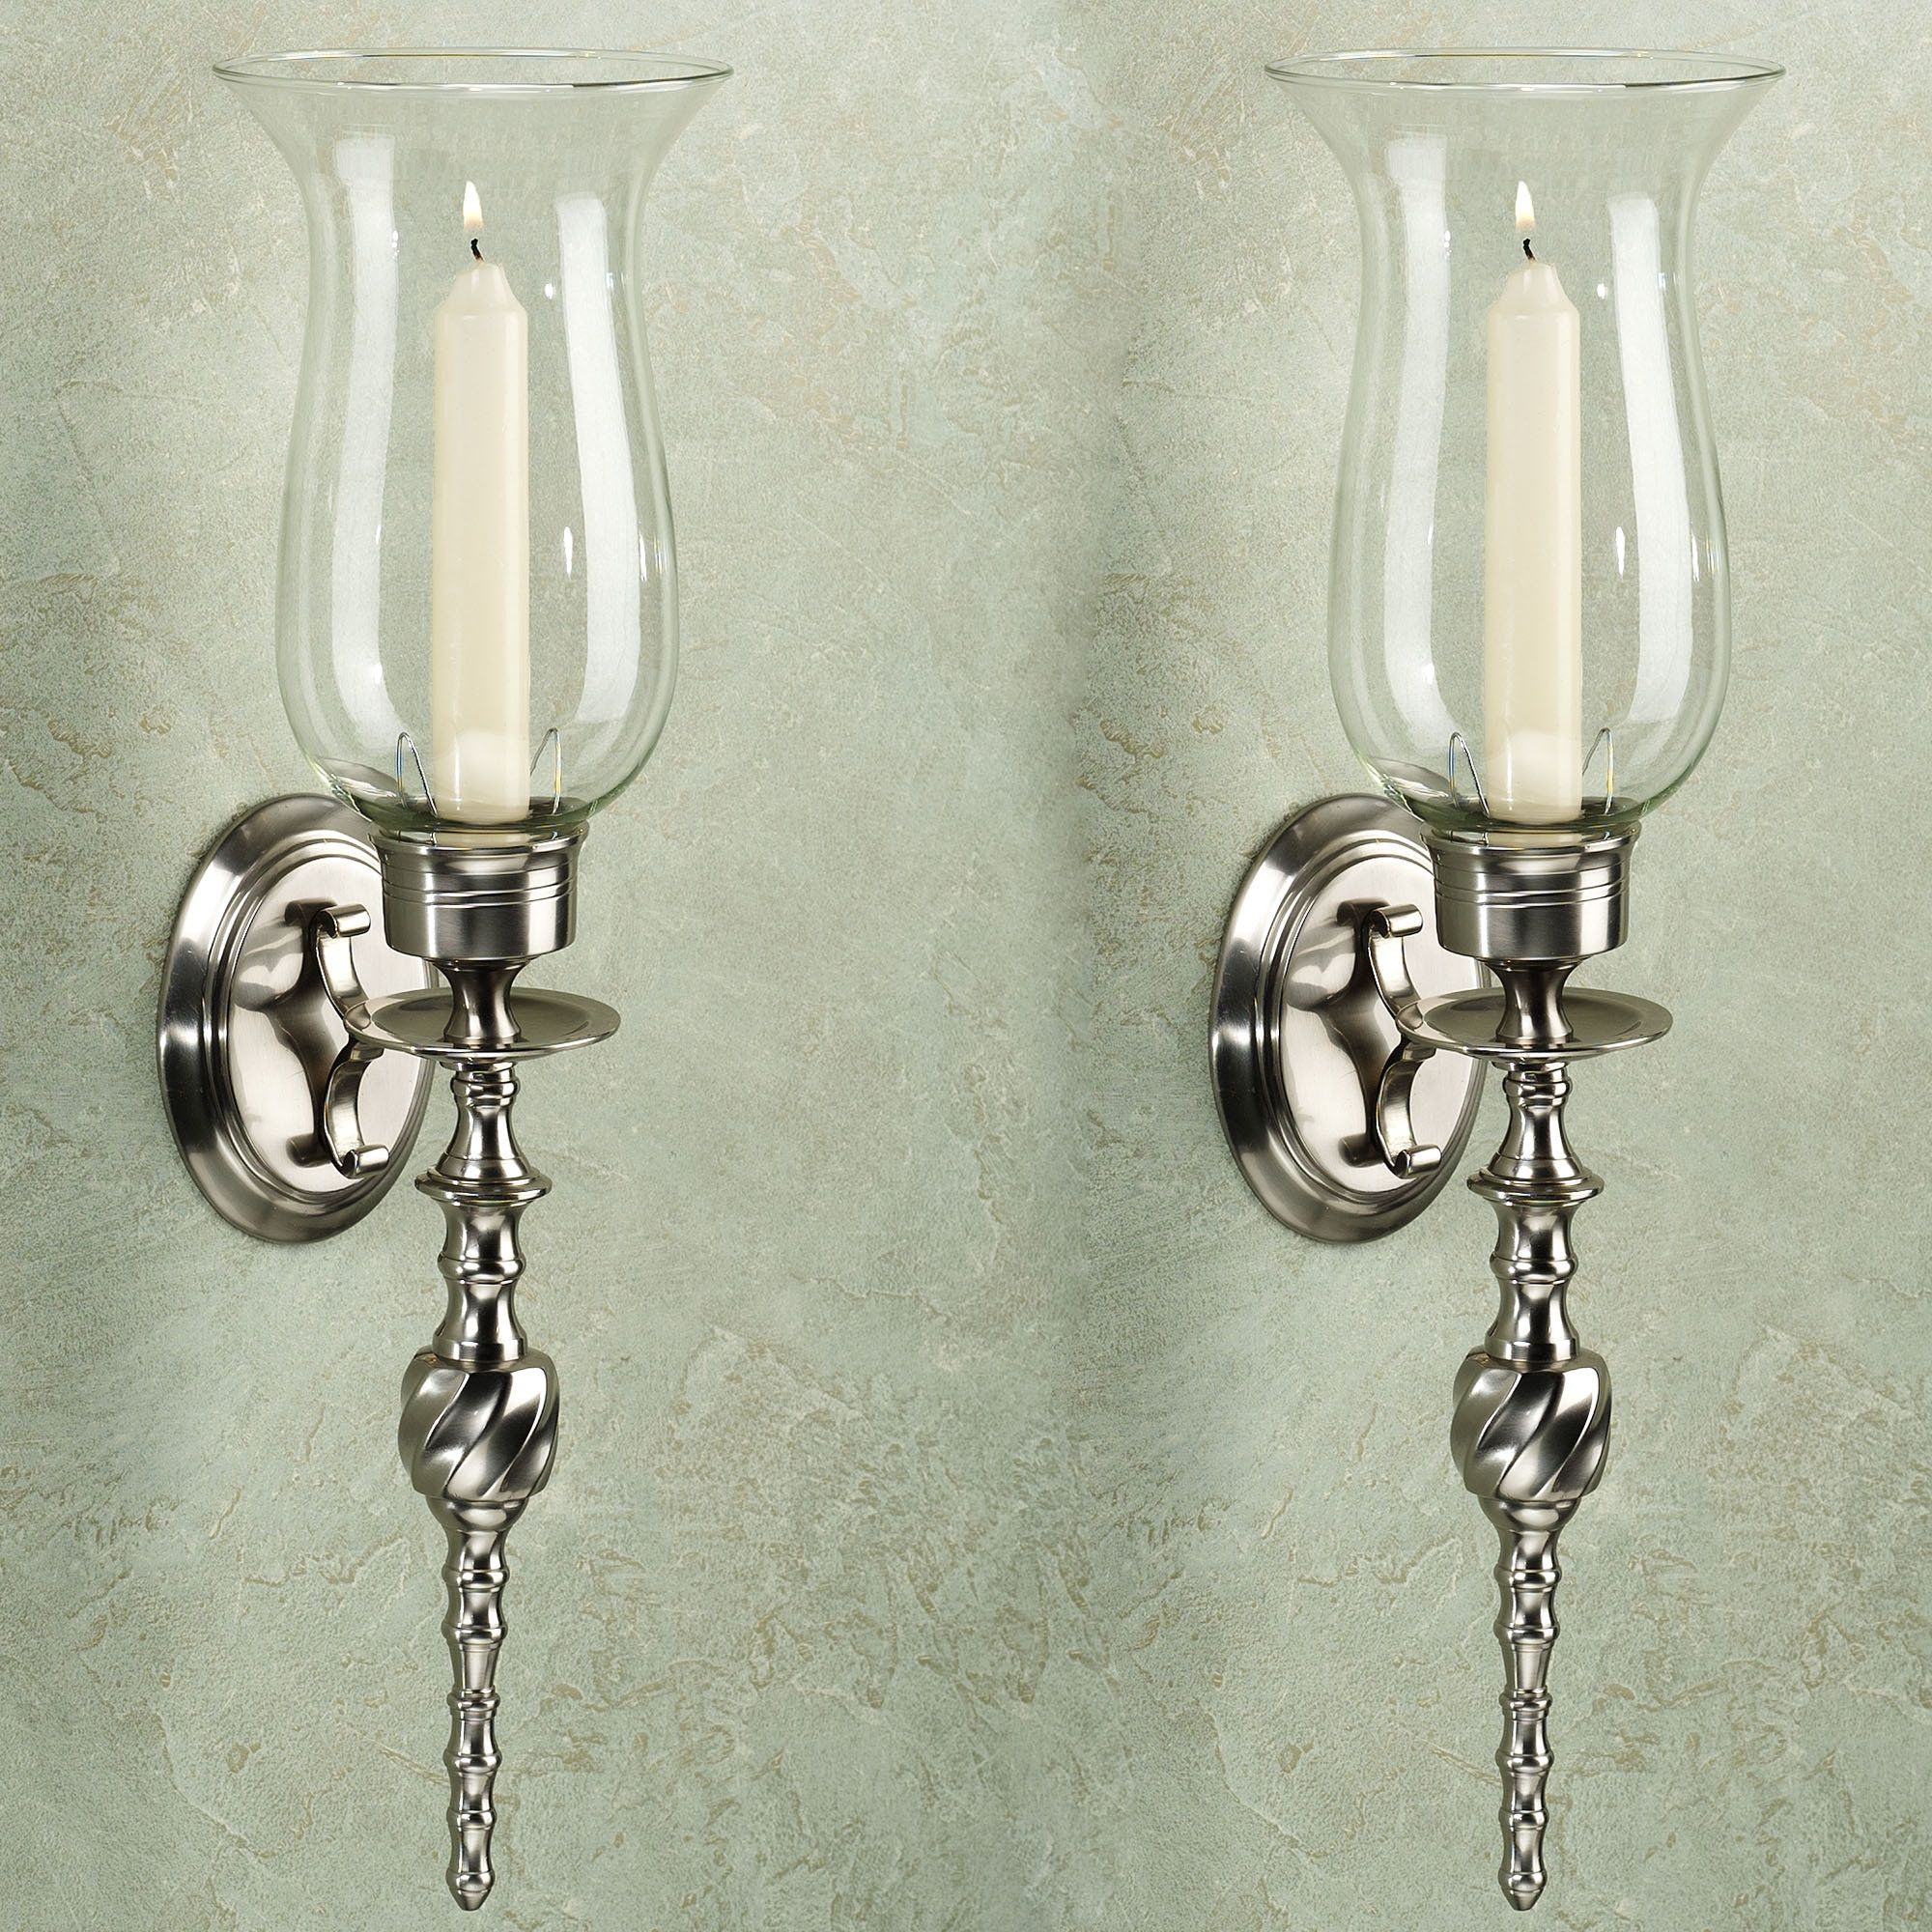 Daria swirl solid brass wall sconce pair